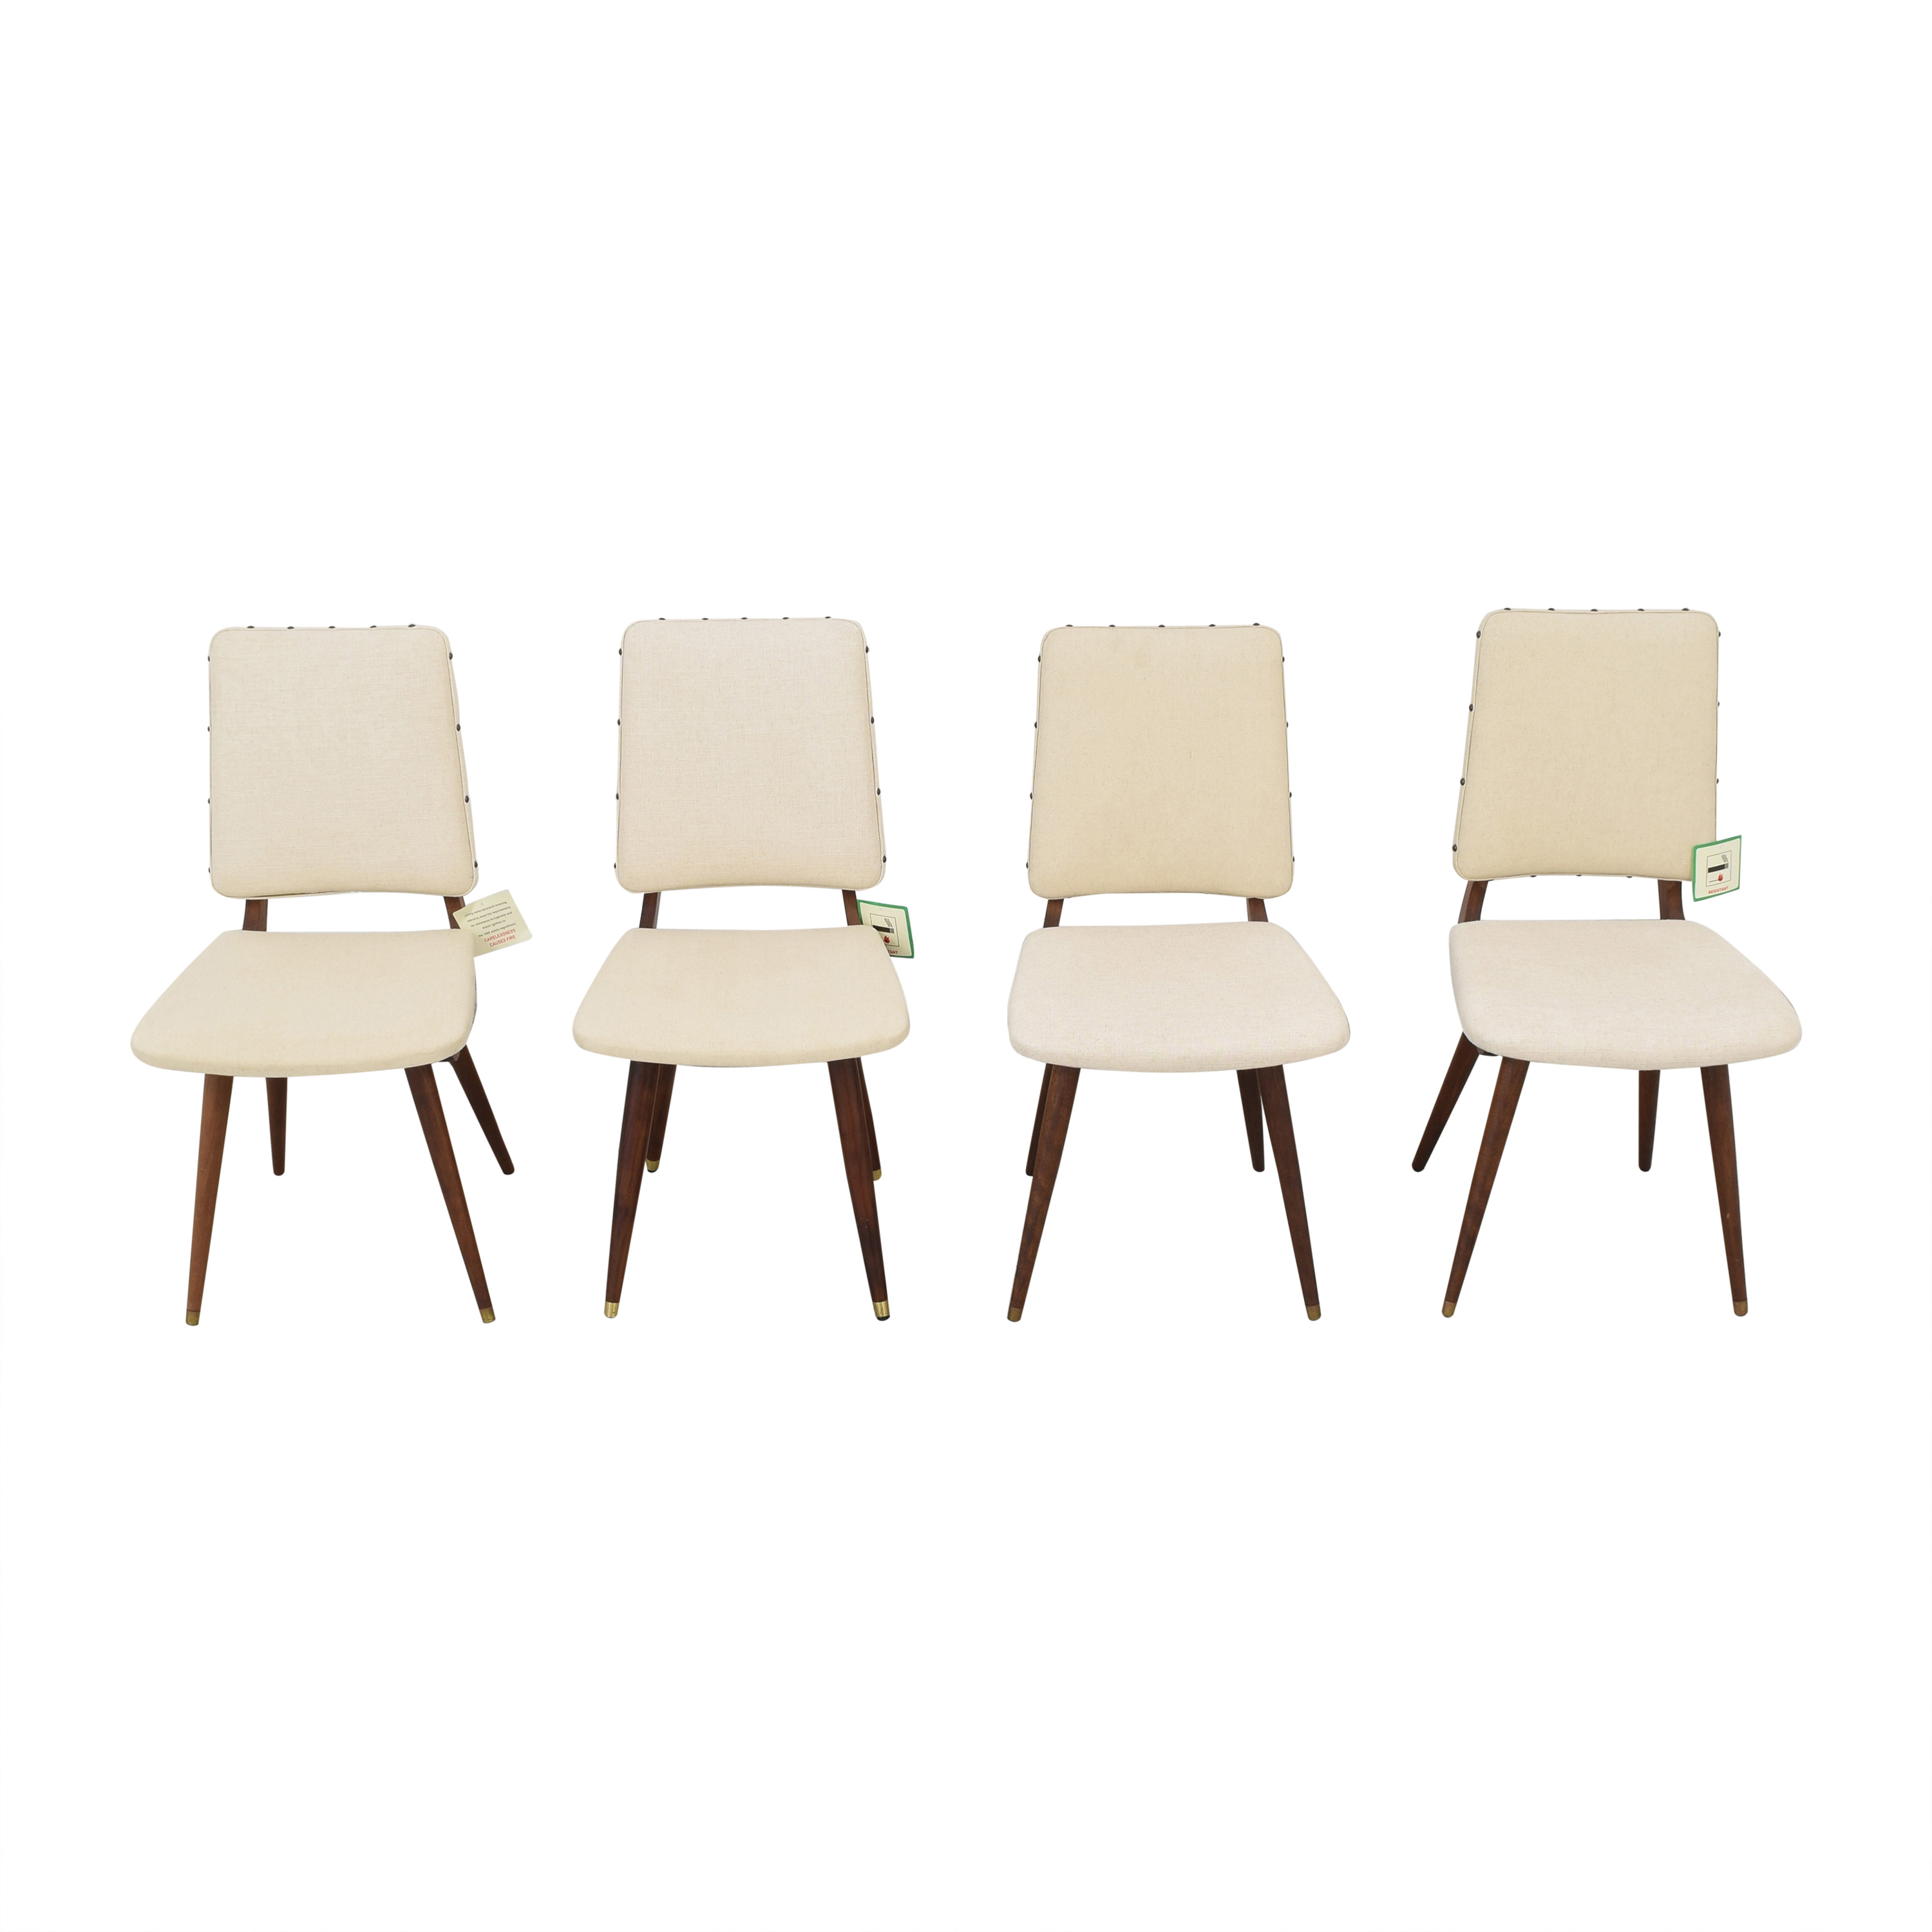 buy Jonathan Adler Camille Dining Chairs Jonathan Adler Dining Chairs